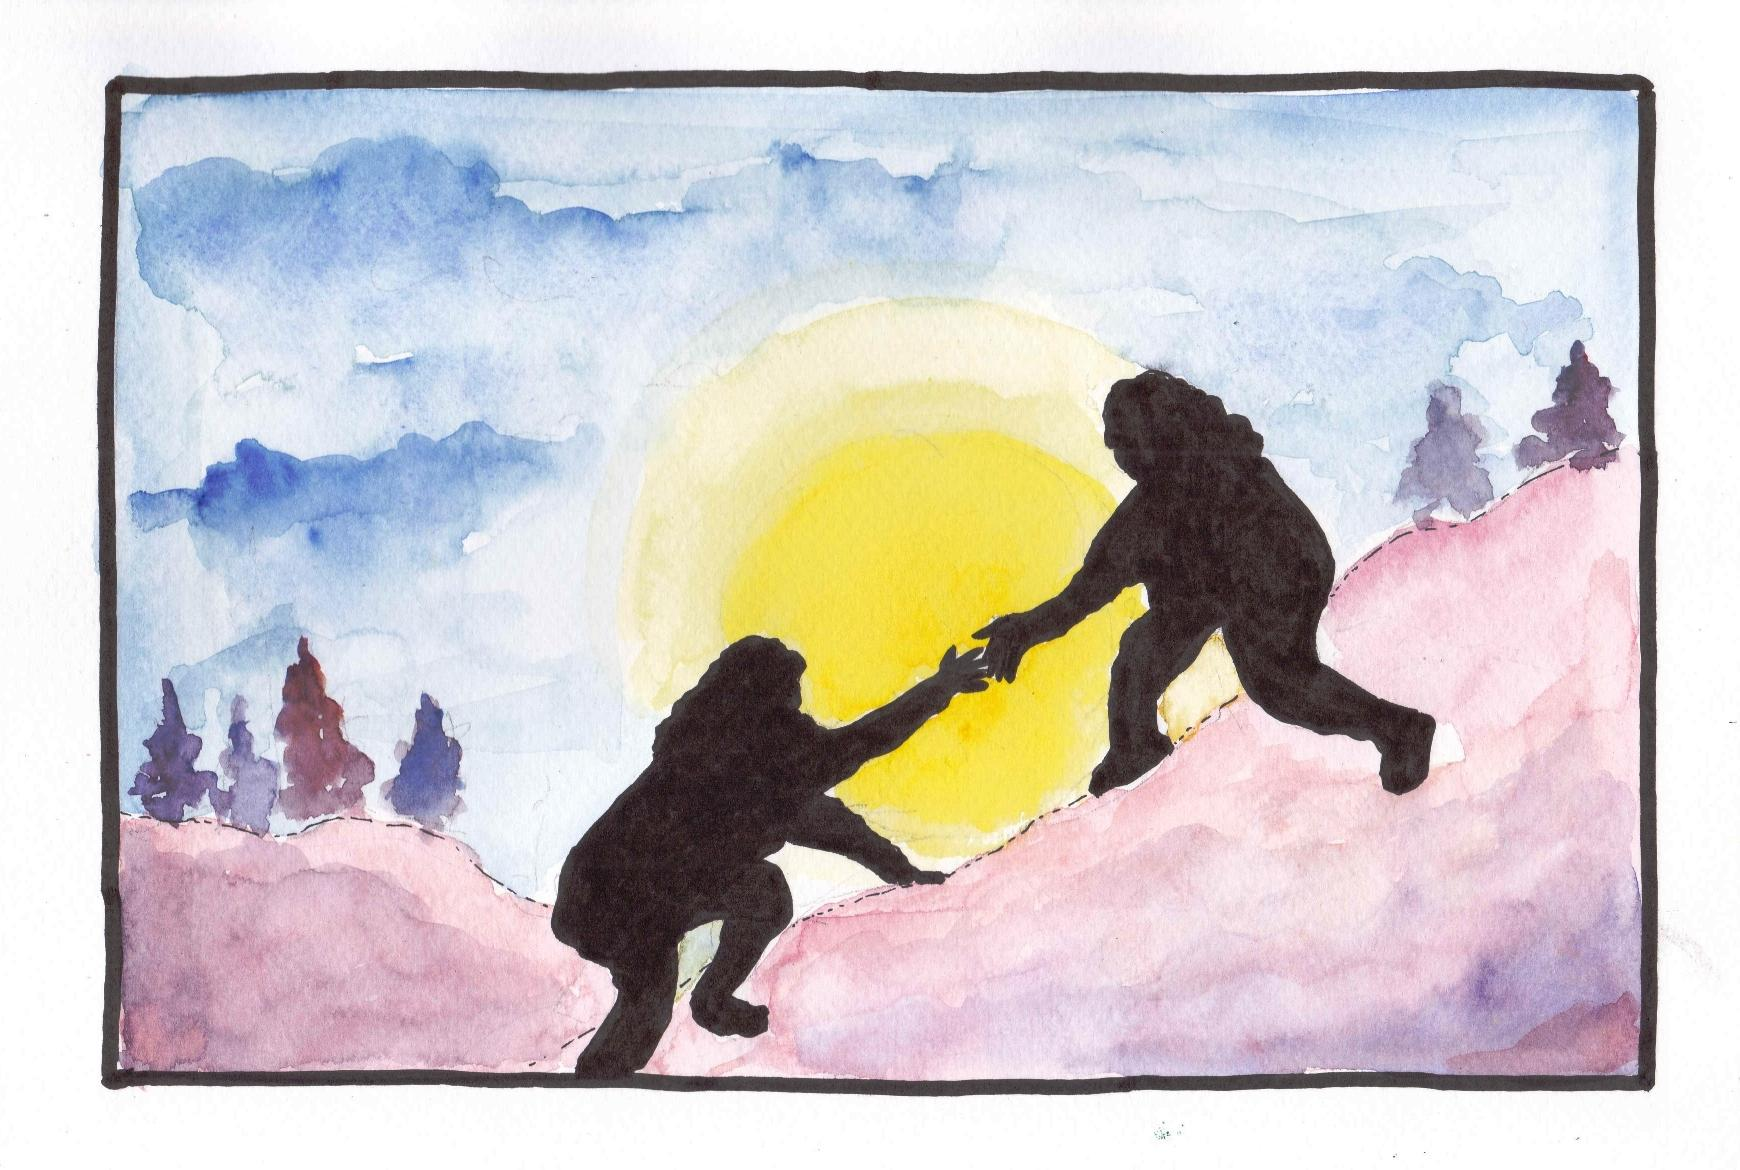 Painting of two people helping each other climb a mountain